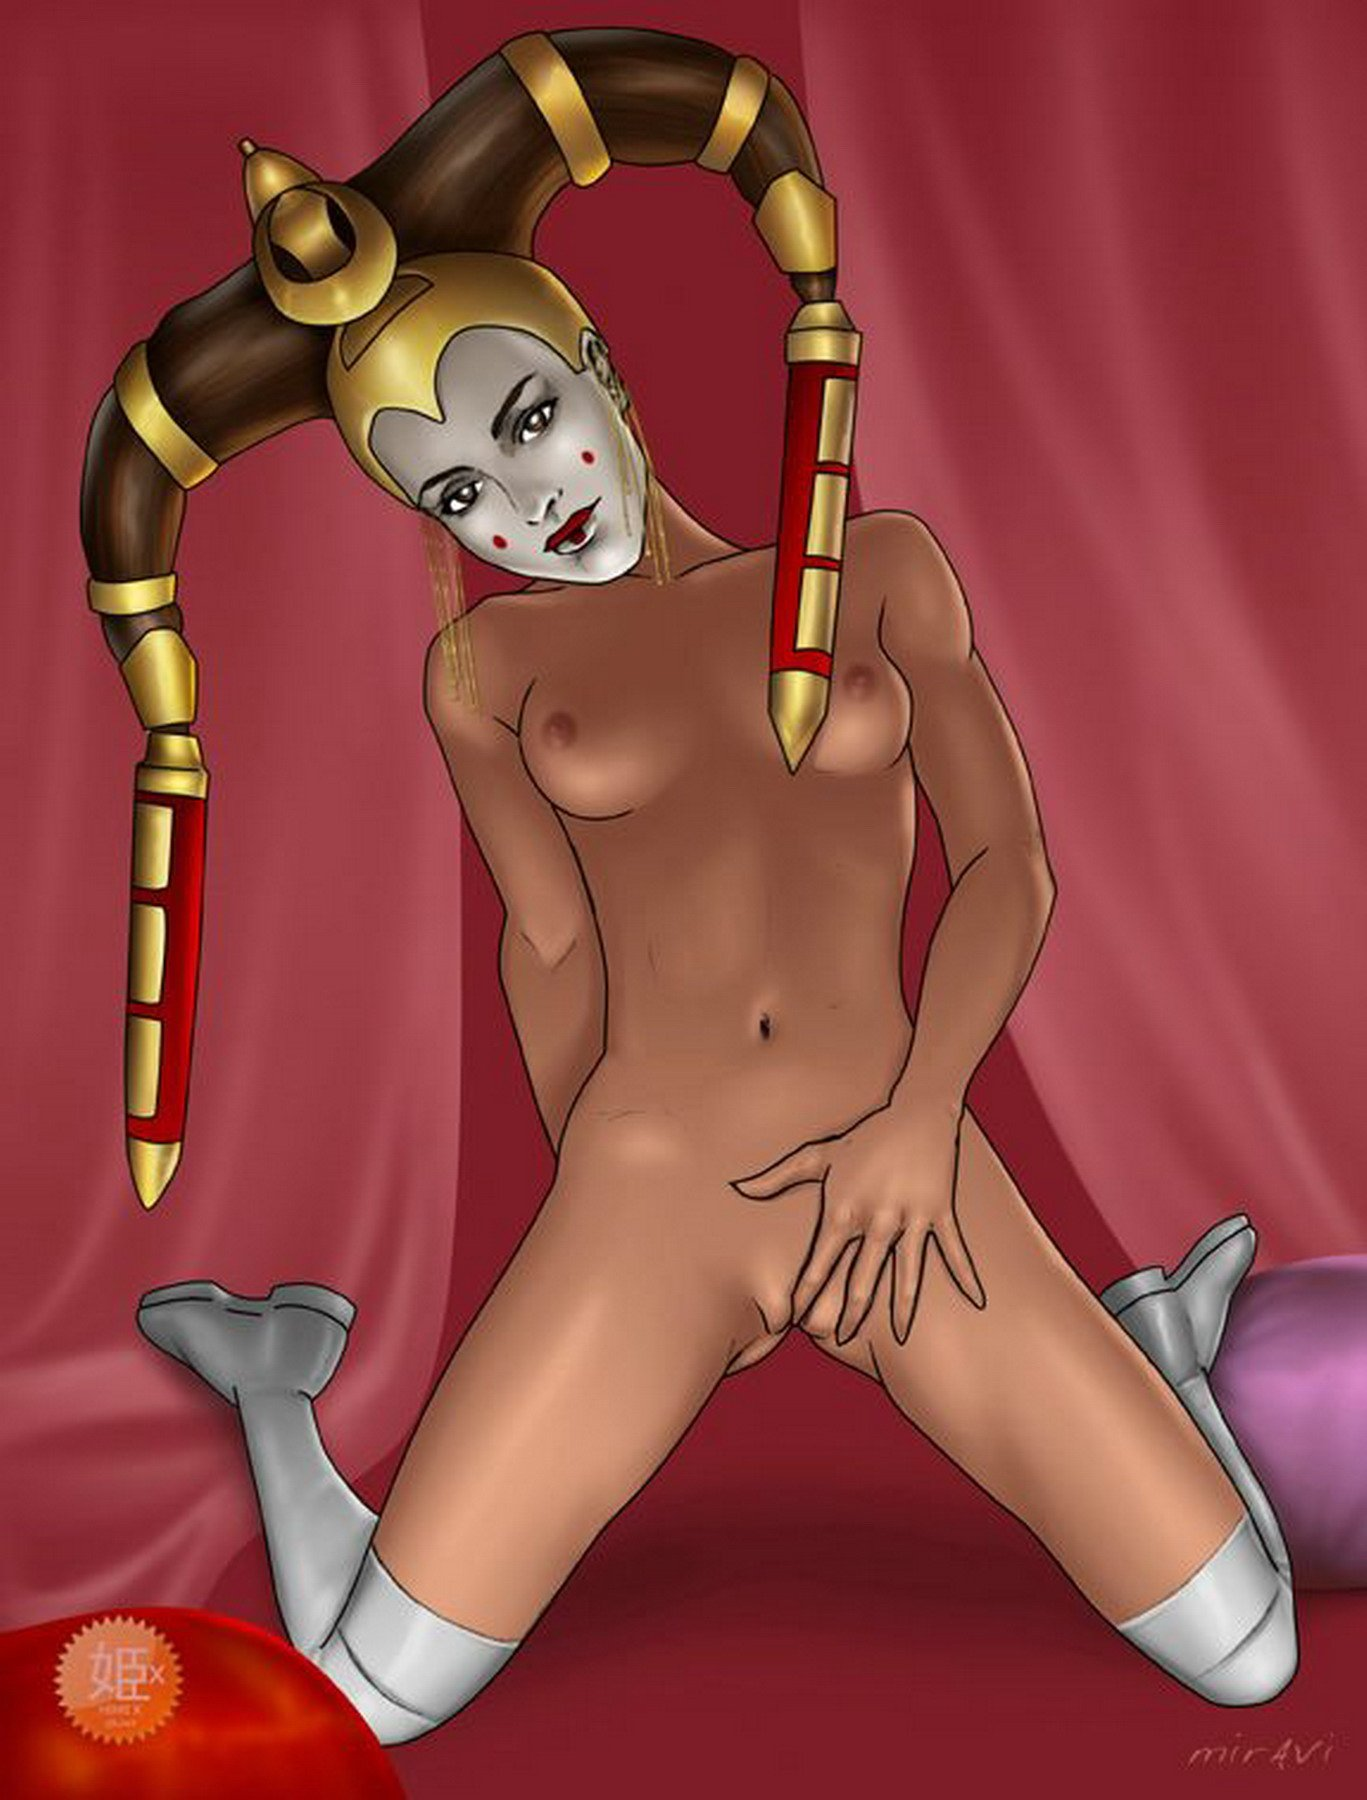 Starwars cartoon porno pics hentia pictures